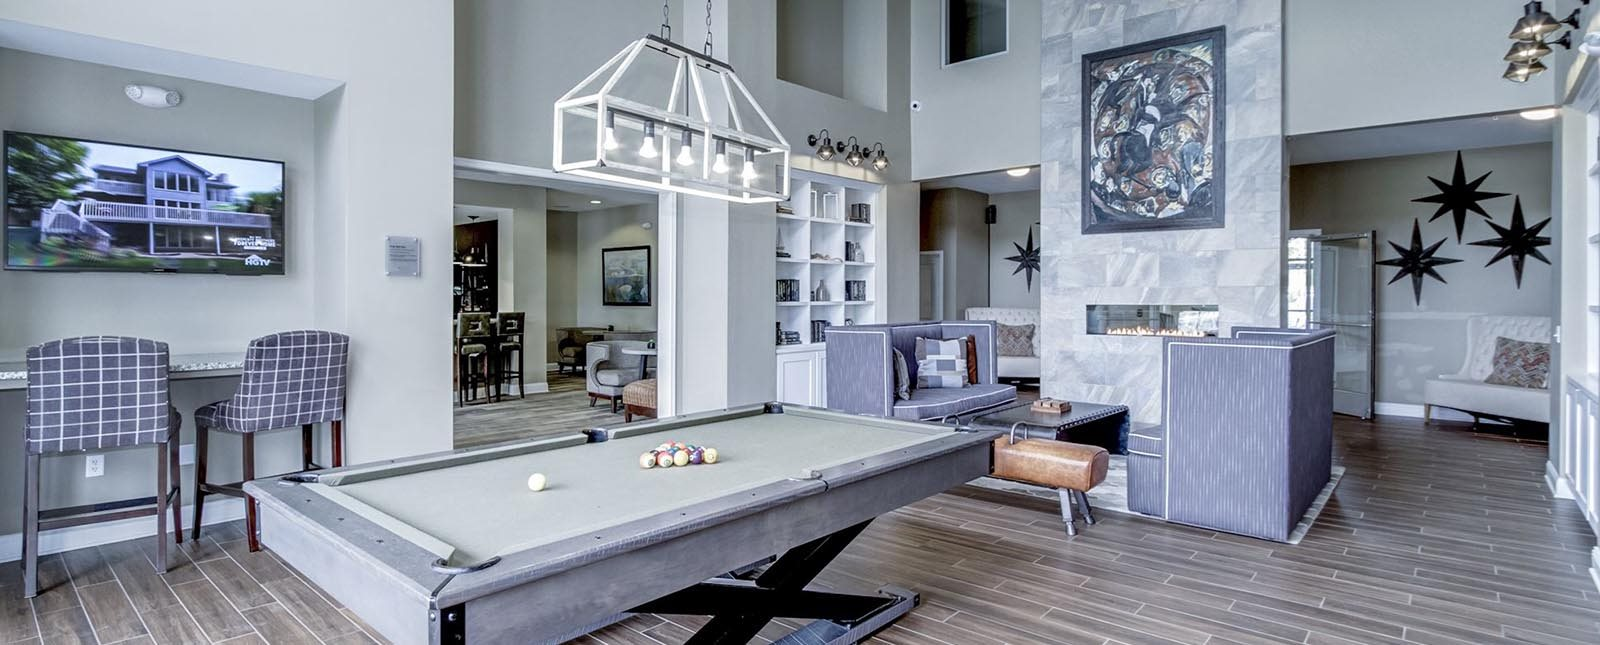 Billiards game at The Haven luxury apartments in Malvern, PA